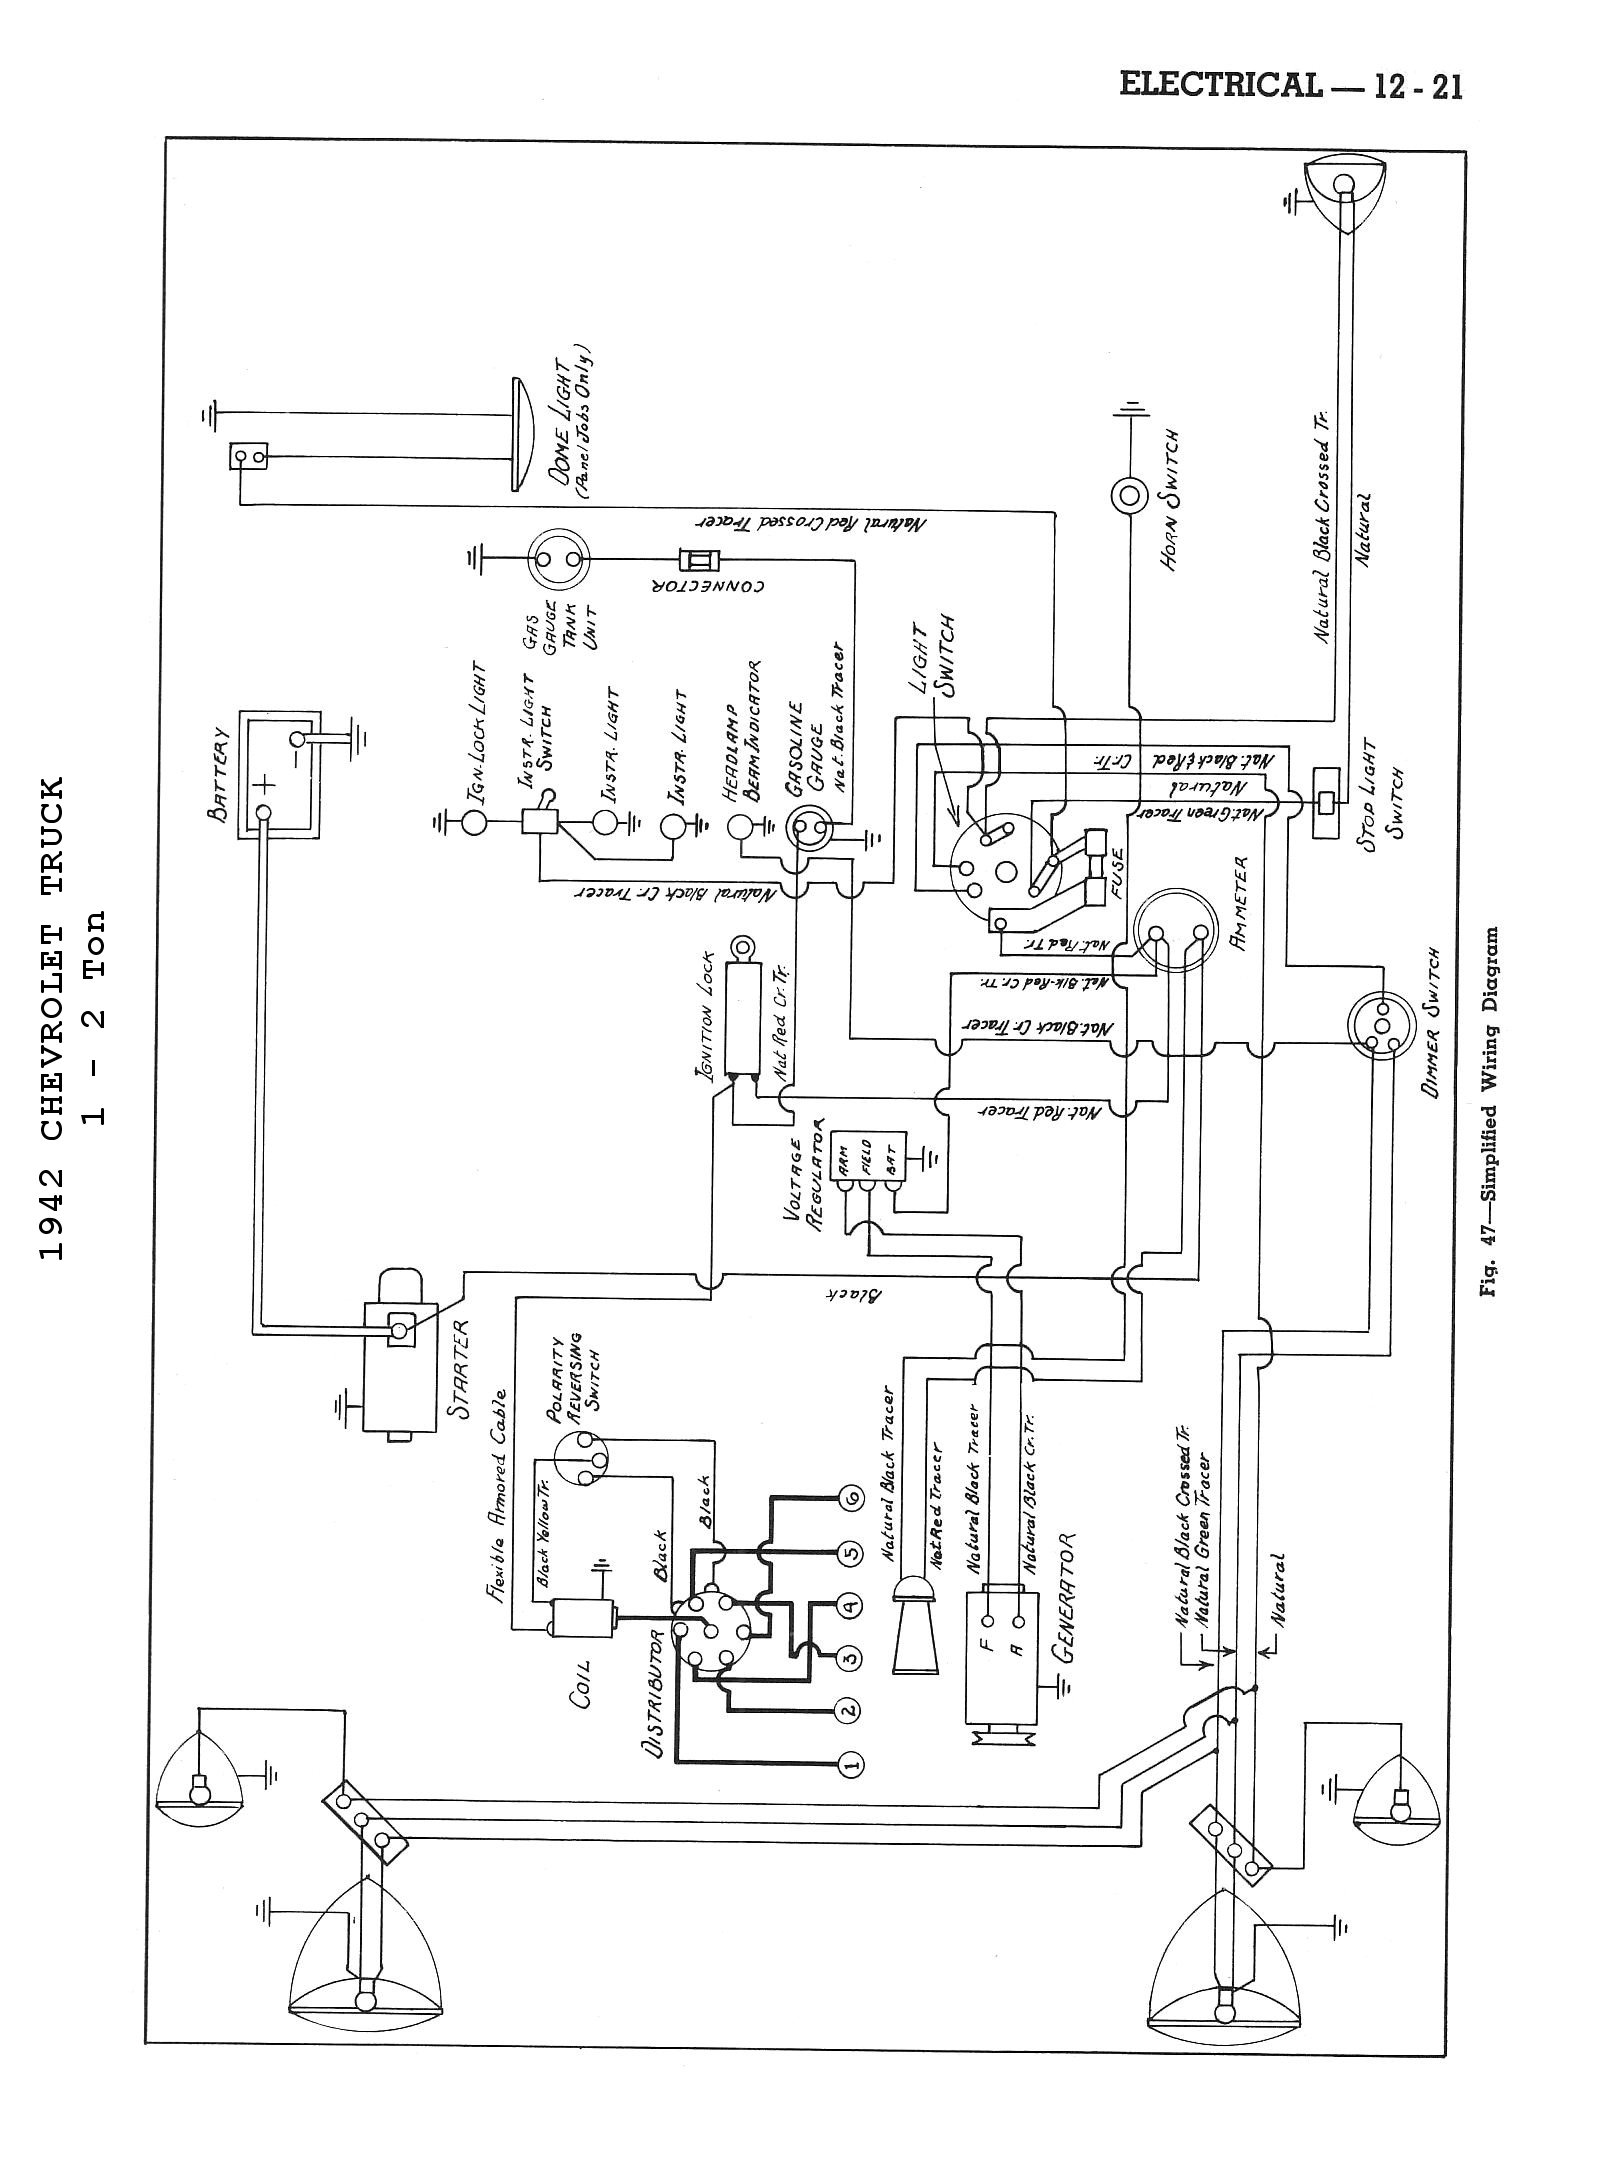 36 Chevy Truck Harness - 17.15.petraoberheit.de • on 1939 ford wiring diagram, 63 chevy wiring diagram, 49 ford wiring diagram,